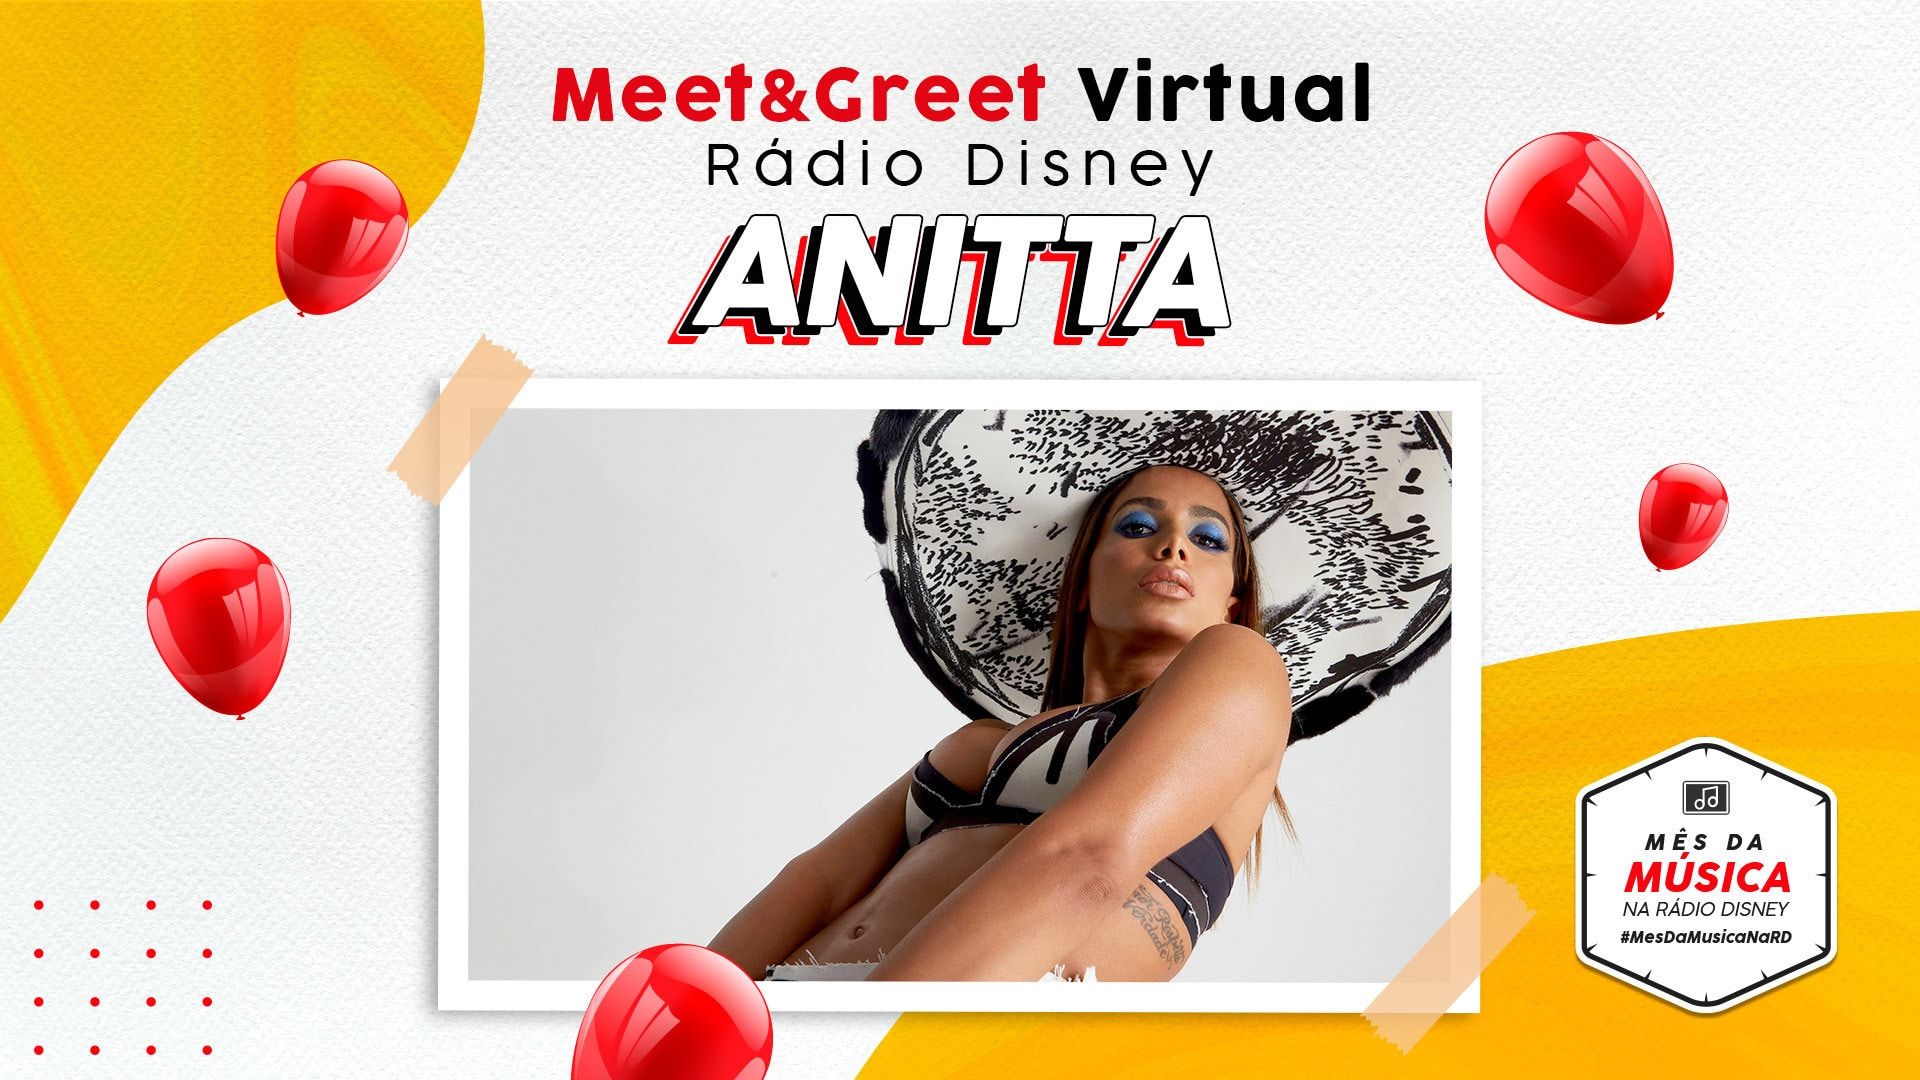 MEET & GREET RÁDIO DISNEY VIRTUAL - ANITTA